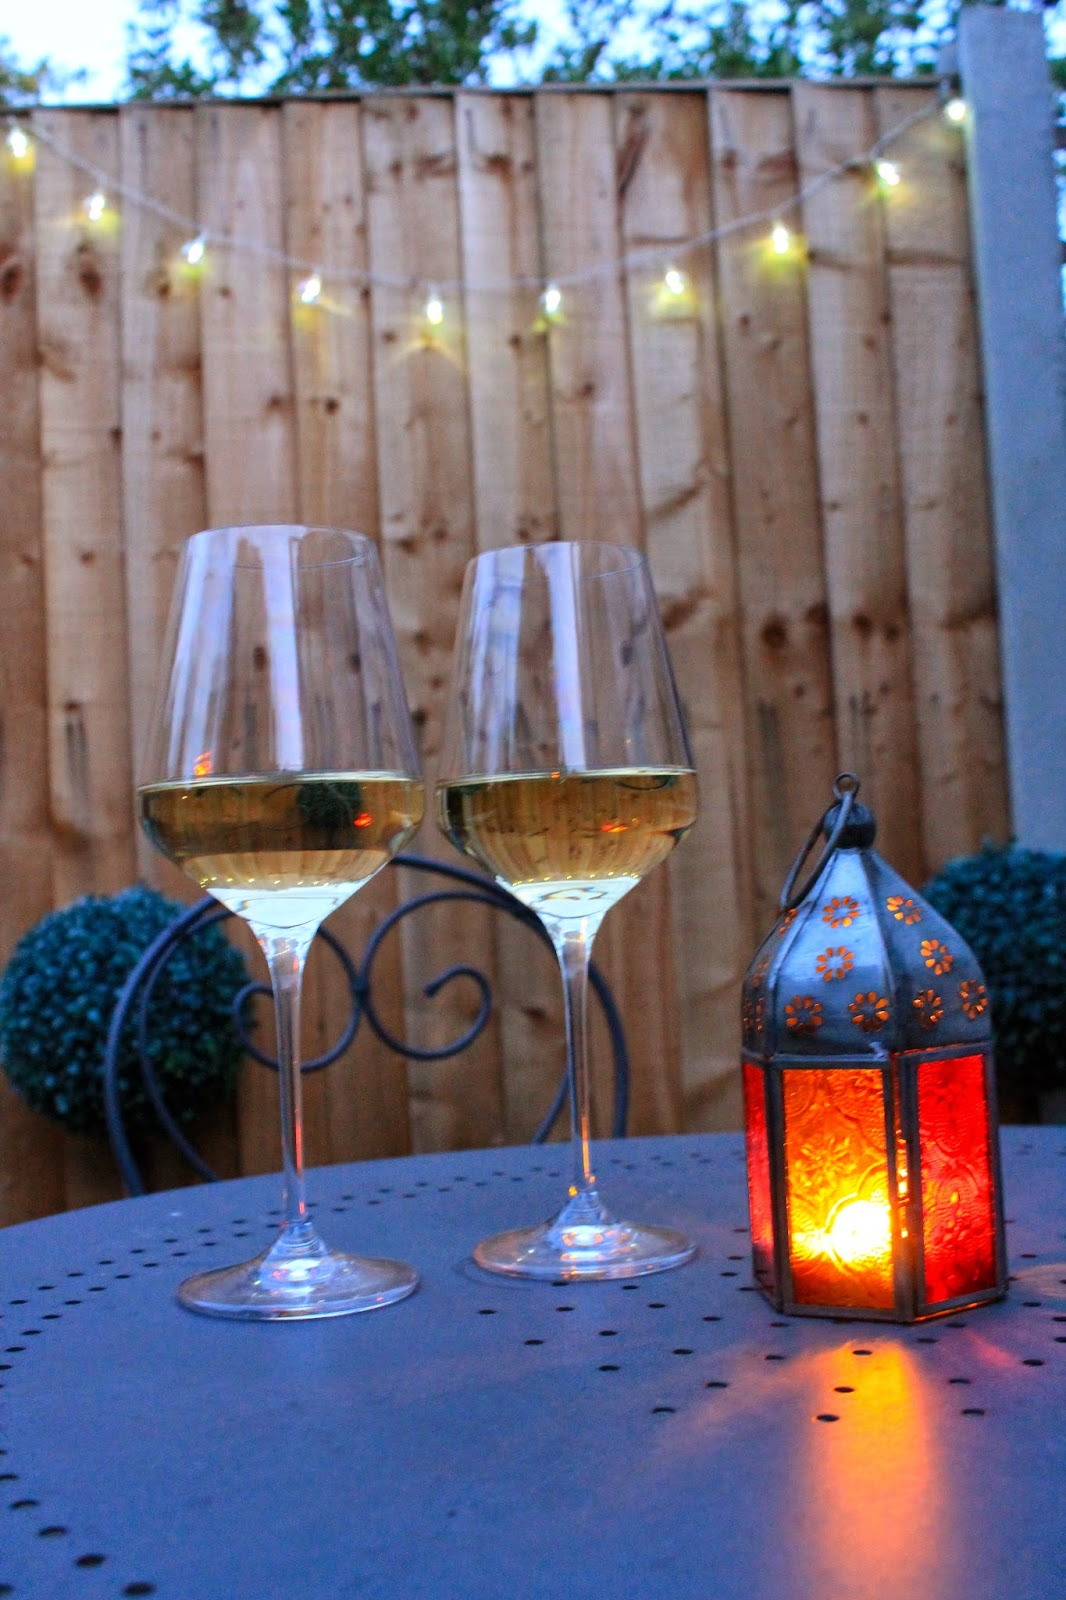 Garden, Bank Holiday, HomeSense, Wine Glasses,